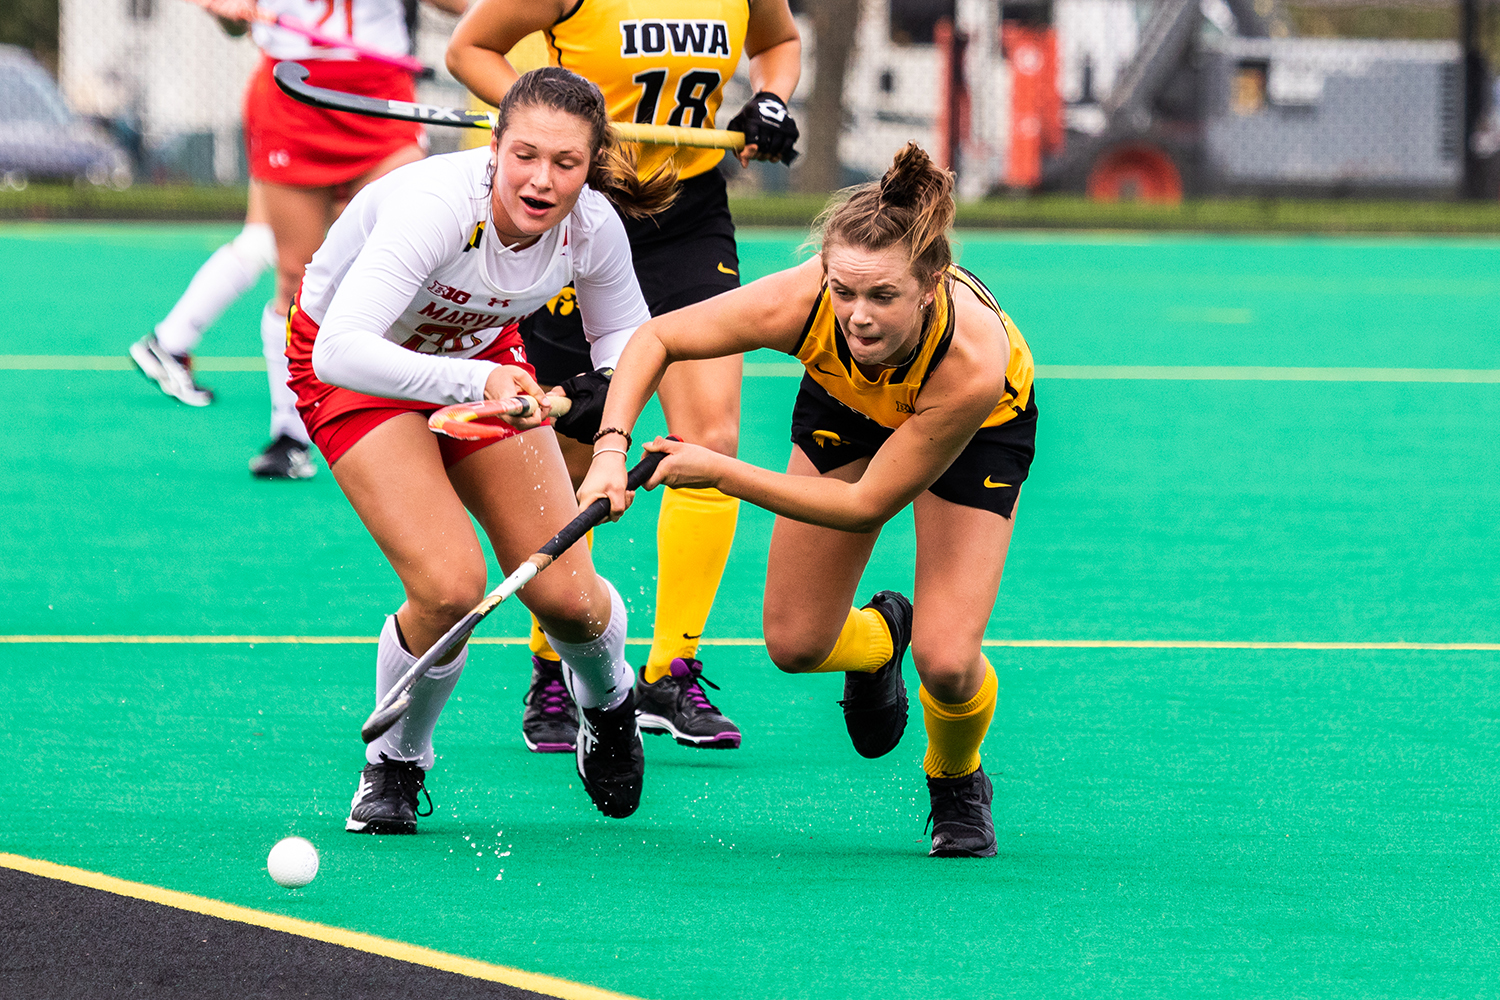 Iowa forward Maddy Murphy chases the ball to the sideline during a field hockey match against Maryland on Sunday, Oct. 14, 2018. The no. 2 ranked Terrapins defeated the no. 8 ranked Hawkeyes 2-1.